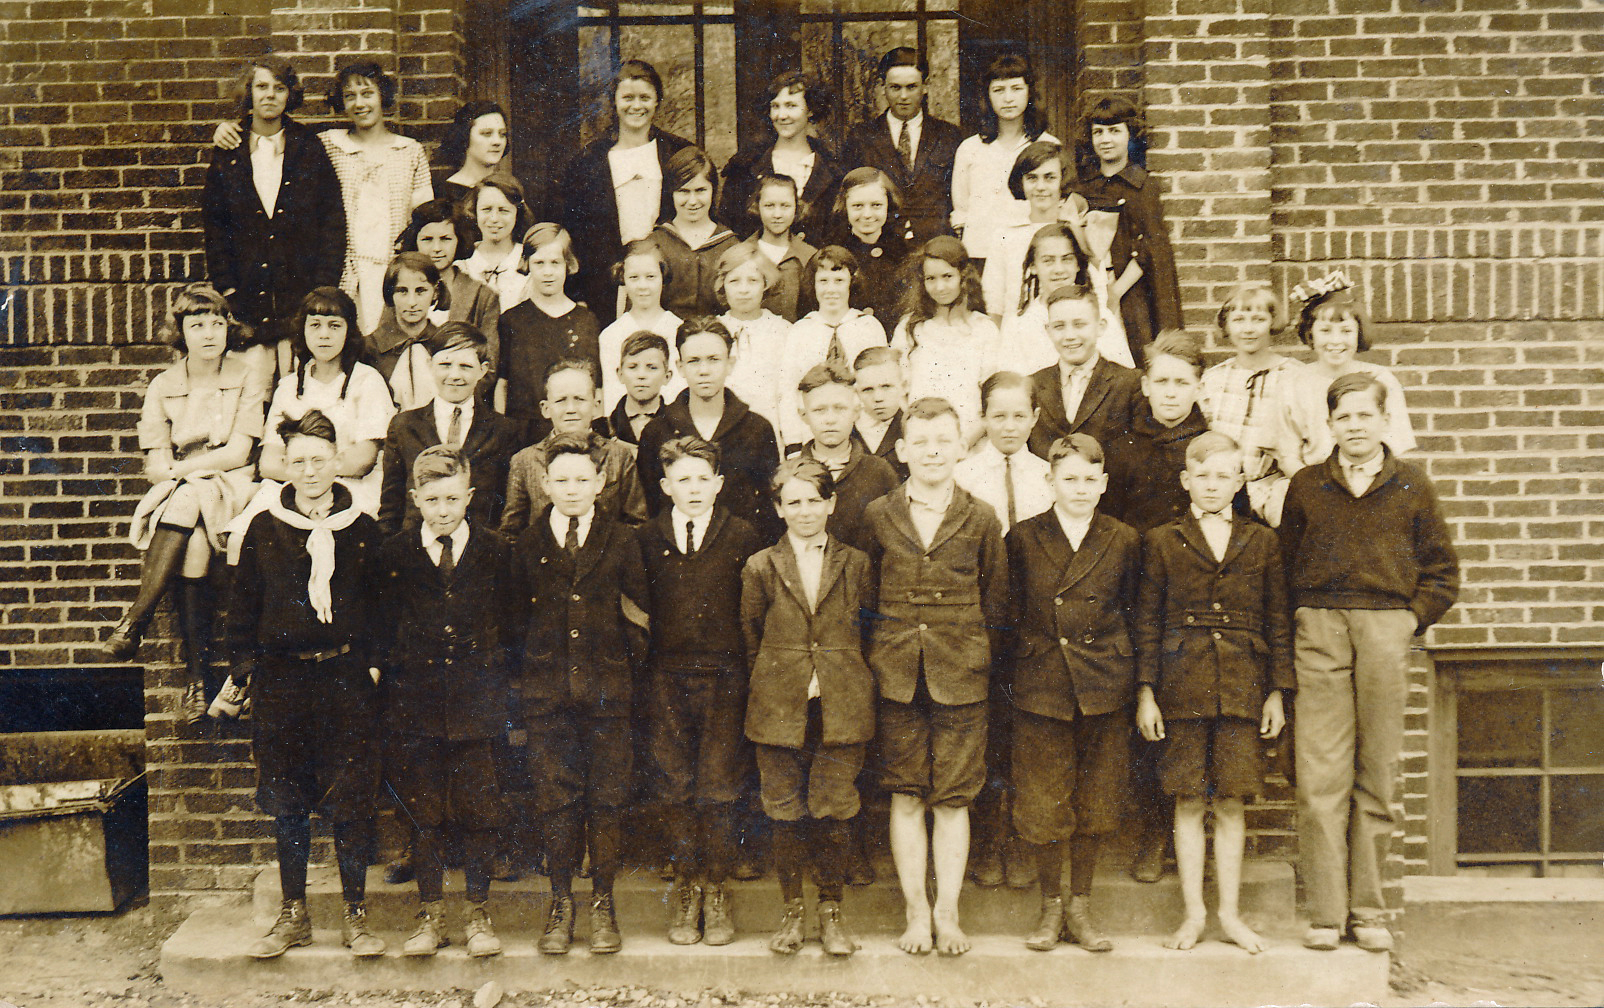 John David Humphries, Jr.  College Street Class, c. 1920. JDH, Jr.s is third from left on first row.